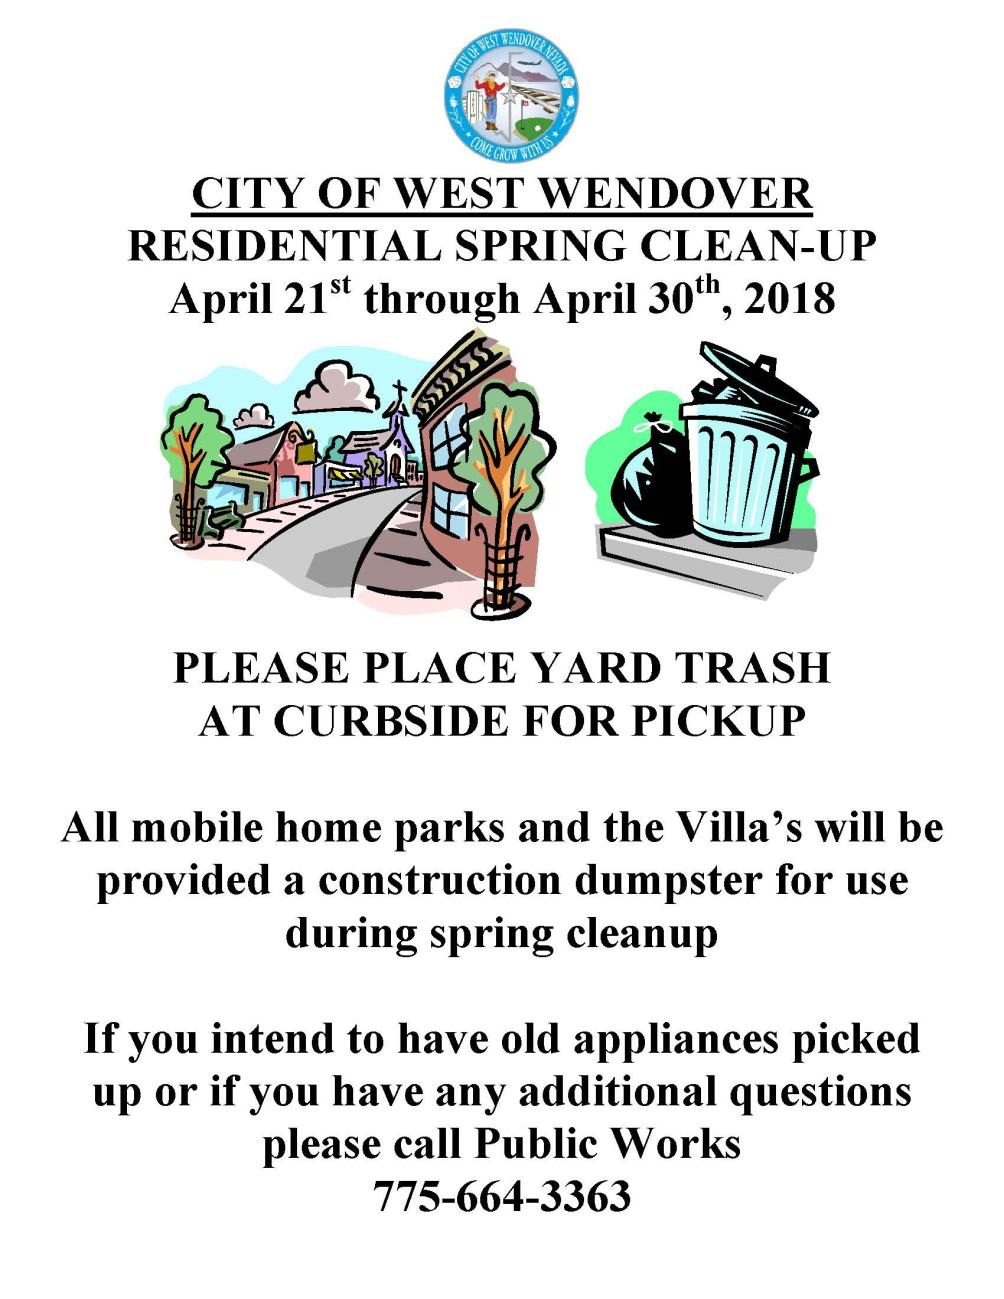 Spring Clean Up Flyer image